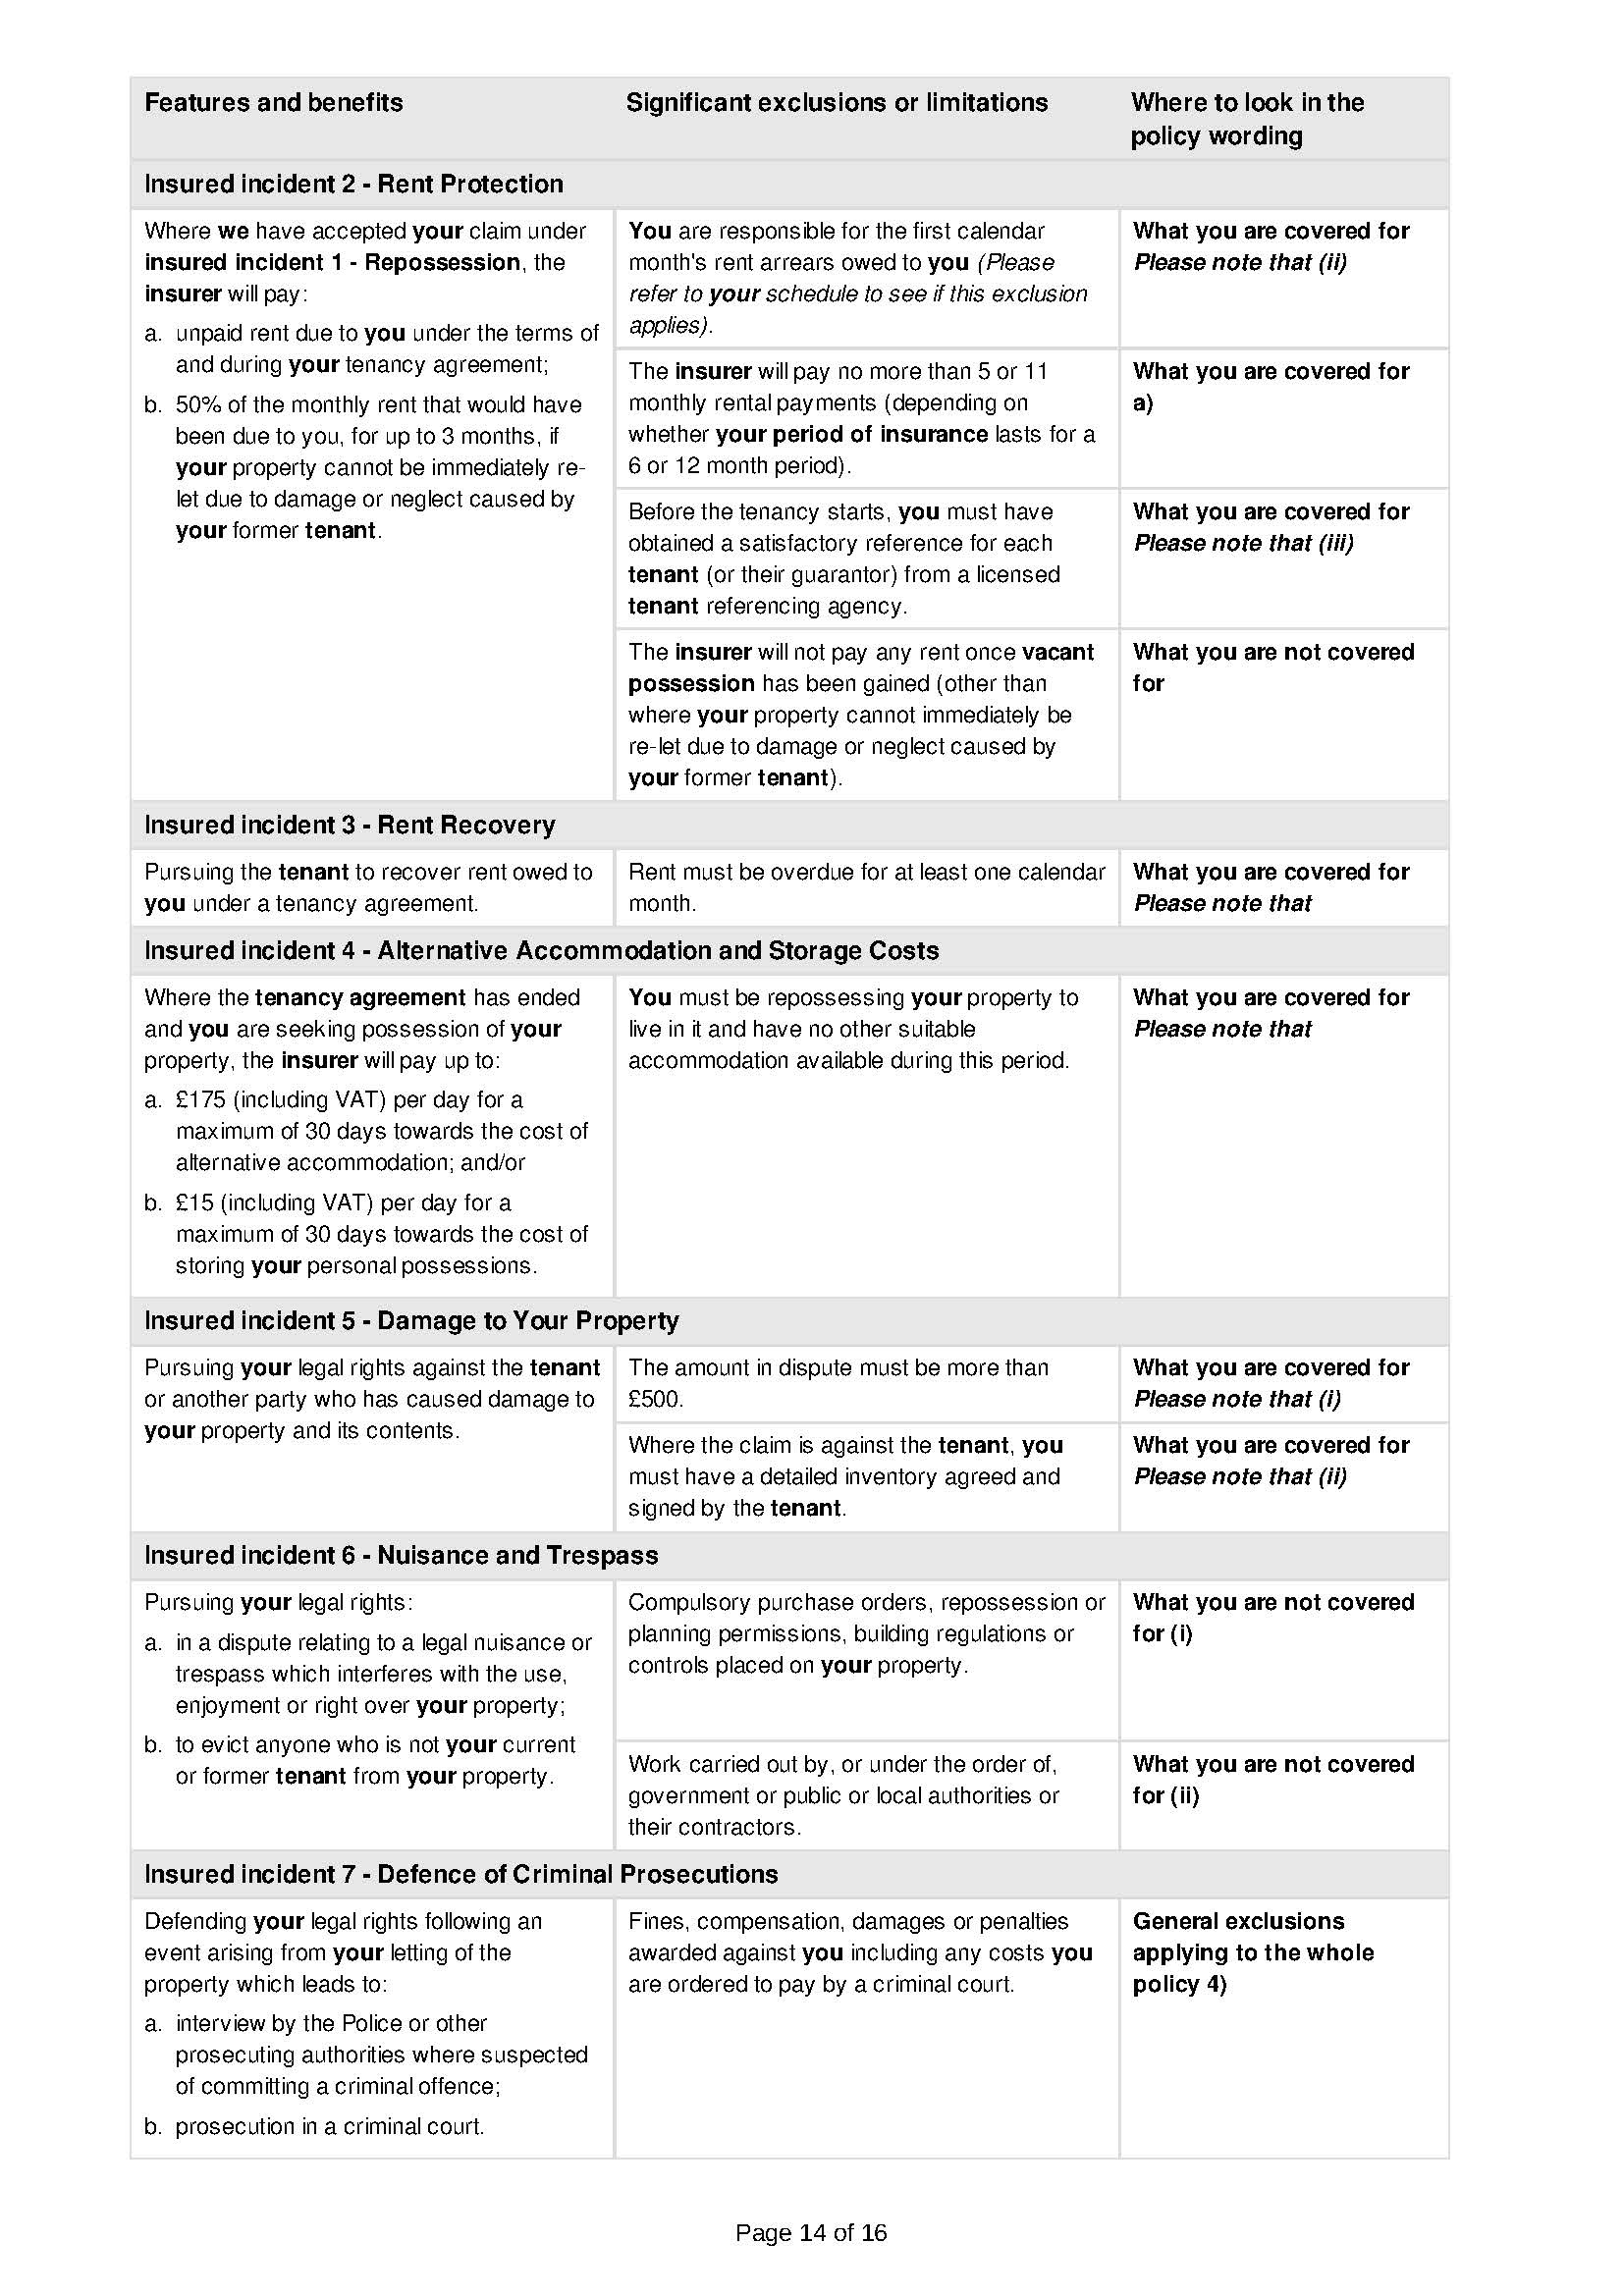 insurance_policy_02_page_14